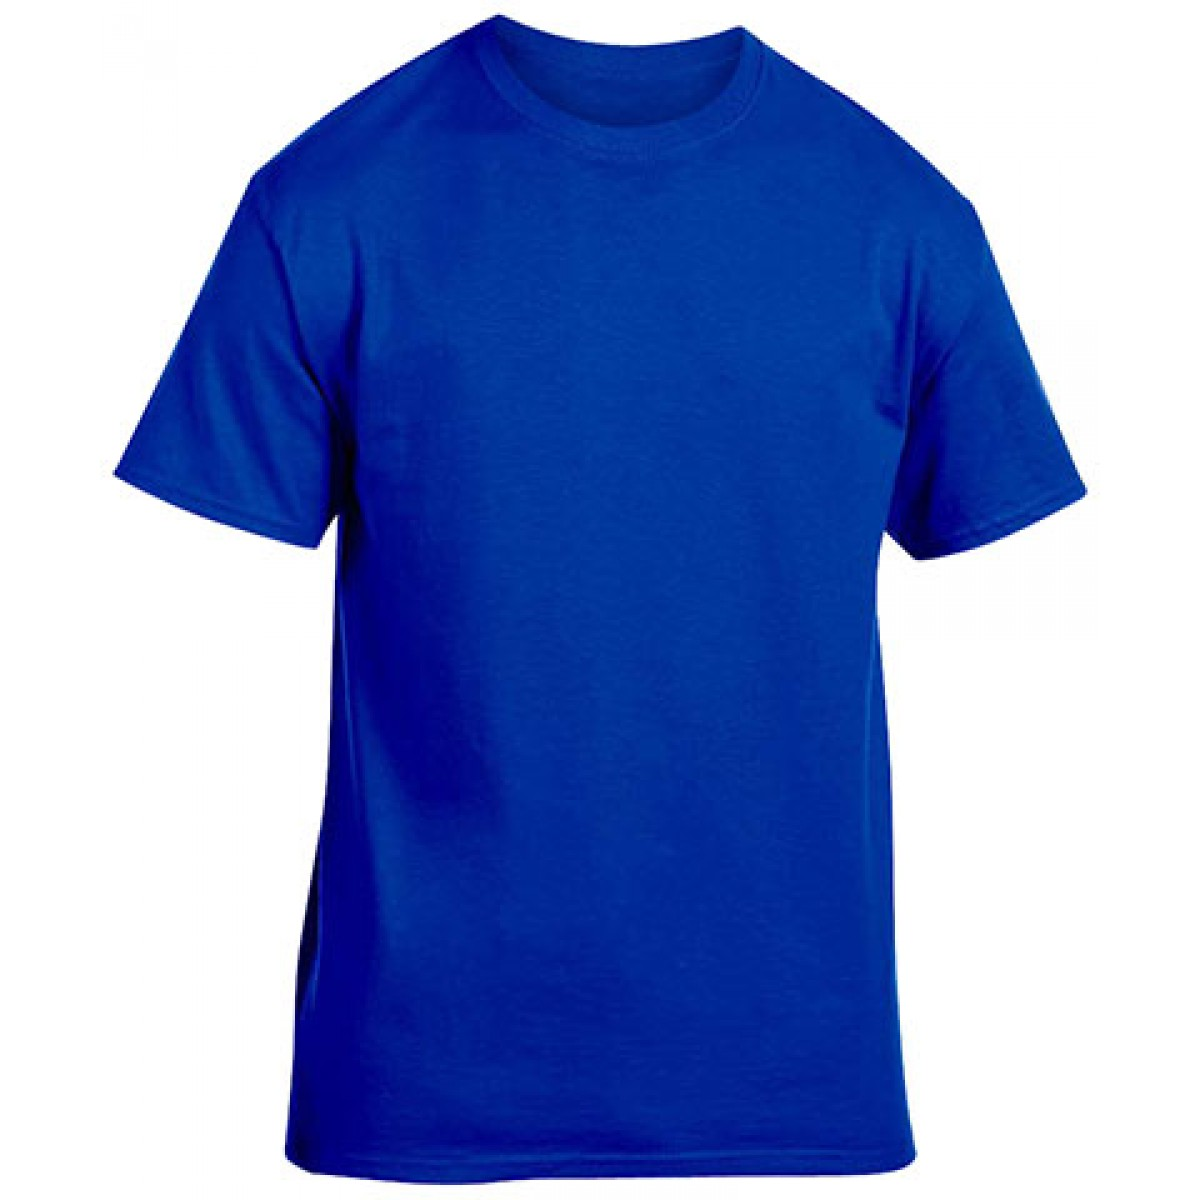 Cotton Short Sleeve T-Shirt-Royal Blue-XL